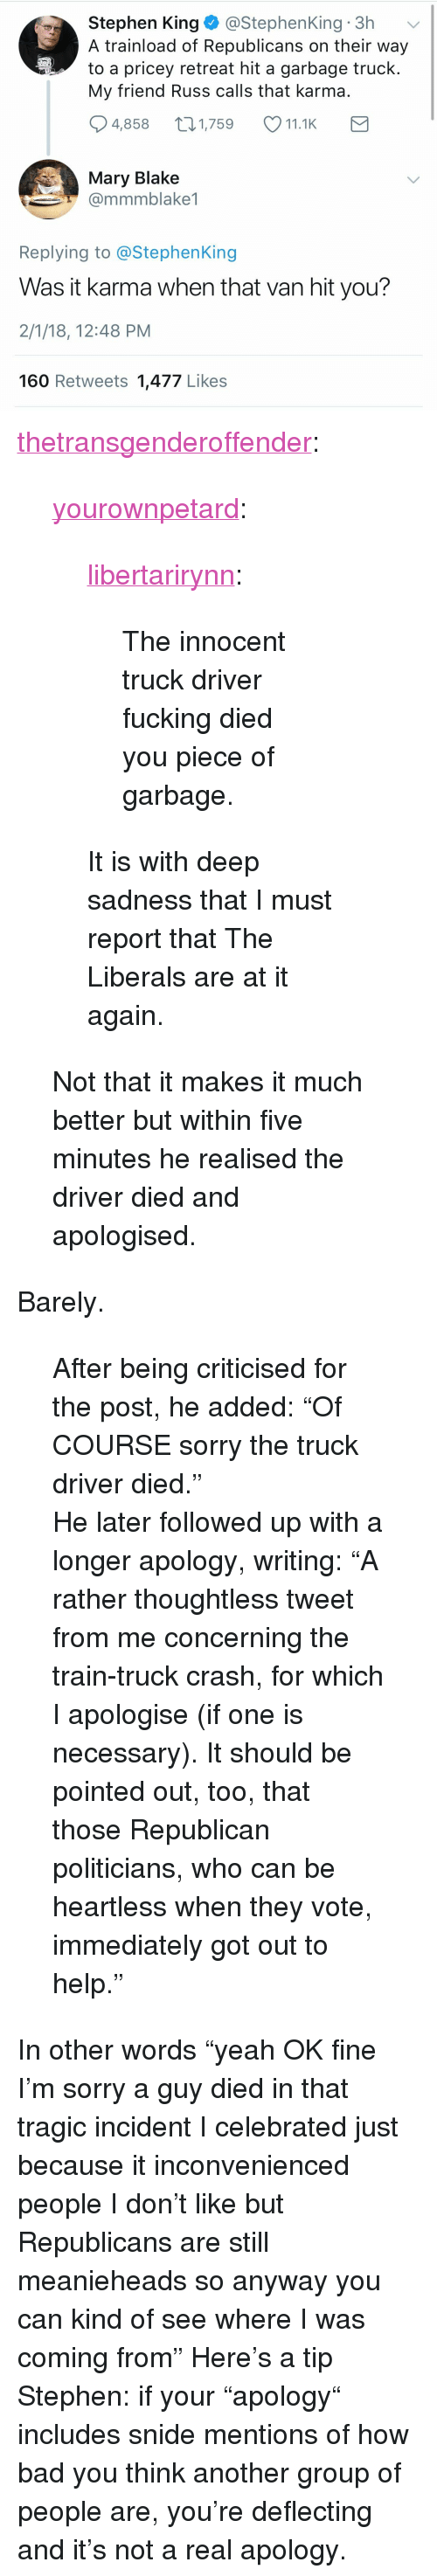 """garbage truck: Stephen King@StephenKing 3h  A trainload of Republicans on their way  to a pricey retreat hit a garbage truck  My friend Russ calls that karma  4,858 1,759 11.1K  Mary Blake  @mmmblake1  Replying to @StephenKing  Was it karma when that van hit you?  2/1/18, 12:48 PM  160 Retweets 1,477 Likes <p><a href=""""https://thetransgenderoffender.tumblr.com/post/170545093910/yourownpetard-libertarirynn-the-innocent-truck"""" class=""""tumblr_blog"""">thetransgenderoffender</a>:</p> <blockquote> <p><a href=""""https://yourownpetard.tumblr.com/post/170544339014/libertarirynn-the-innocent-truck-driver-fucking"""" class=""""tumblr_blog"""">yourownpetard</a>:</p>  <blockquote> <p><a href=""""https://libertarirynn.tumblr.com/post/170544274549/the-innocent-truck-driver-fucking-died-you-piece"""" class=""""tumblr_blog"""">libertarirynn</a>:</p> <blockquote><p>The innocent truck driver fucking died you piece of garbage.</p></blockquote> <p>It is with deep sadness that I must report that The Liberals are at it again.</p> </blockquote>  <p>Not that it makes it much better but within five minutes he realised the driver died and apologised.</p> </blockquote> <p>Barely.  </p><blockquote><p> After being criticised for the post, he added: """"Of COURSE sorry the truck driver died.""""  <br/></p><p>He later followed up with a longer apology, writing: """"A rather thoughtless tweet from me concerning the train-truck crash, for which I apologise (if one is necessary). It should be pointed out, too, that those Republican politicians, who can be heartless when they vote, immediately got out to help.""""</p></blockquote> In other words """"yeah OK fine I'm sorry a guy died in that tragic incident I celebrated just because it inconvenienced people I don't like but Republicans are still meanieheads so anyway you can kind of see where I was coming from"""" Here's a tip Stephen: if your """"apology"""" includes snide mentions of how bad you think another group of people are, you're deflecting and it's not a real apology."""